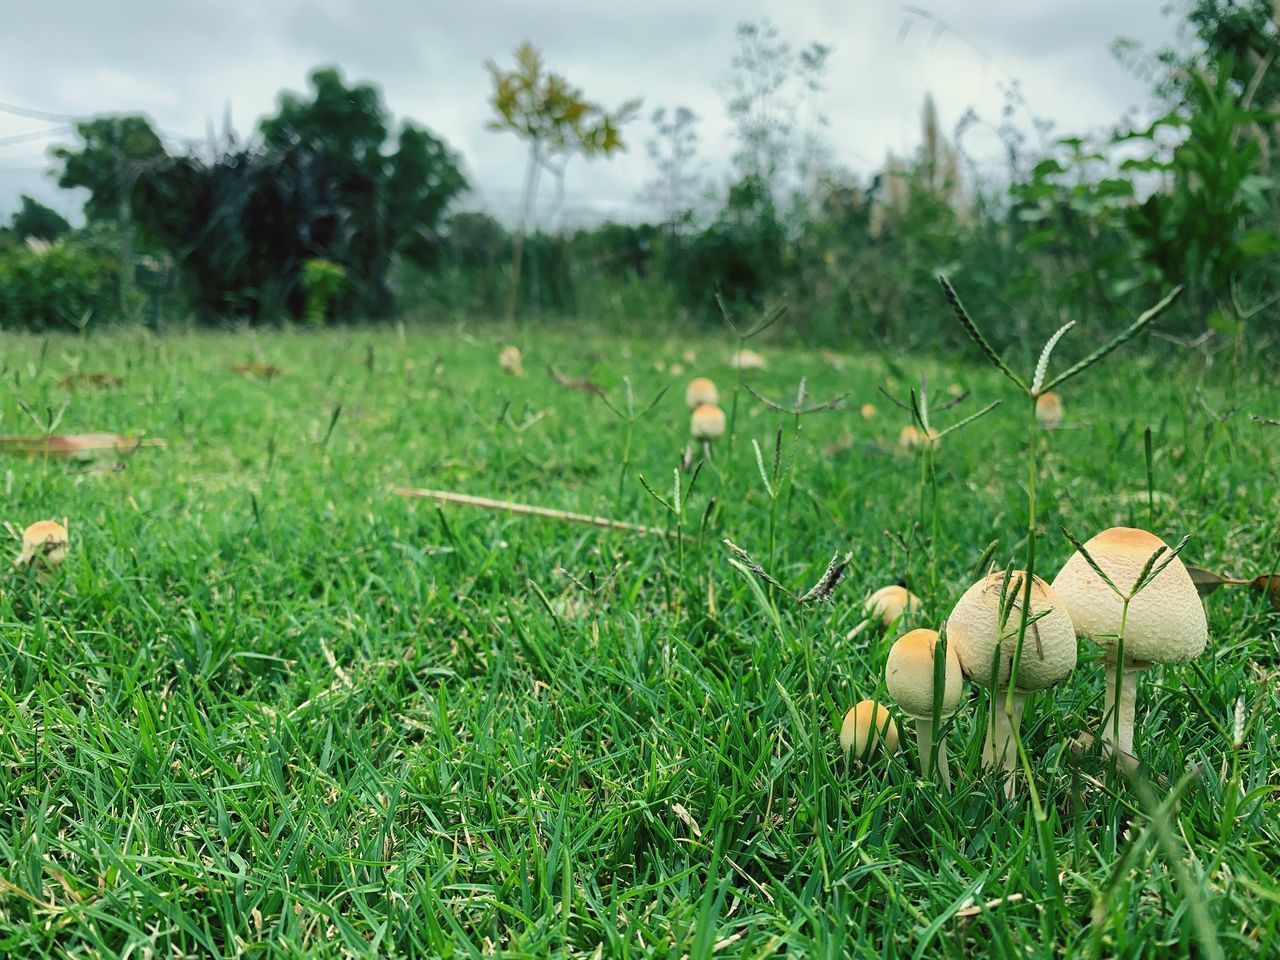 plant, field, land, green color, growth, nature, grass, no people, day, focus on foreground, food, fungus, mushroom, outdoors, beauty in nature, close-up, vegetable, toadstool, food and drink, tree